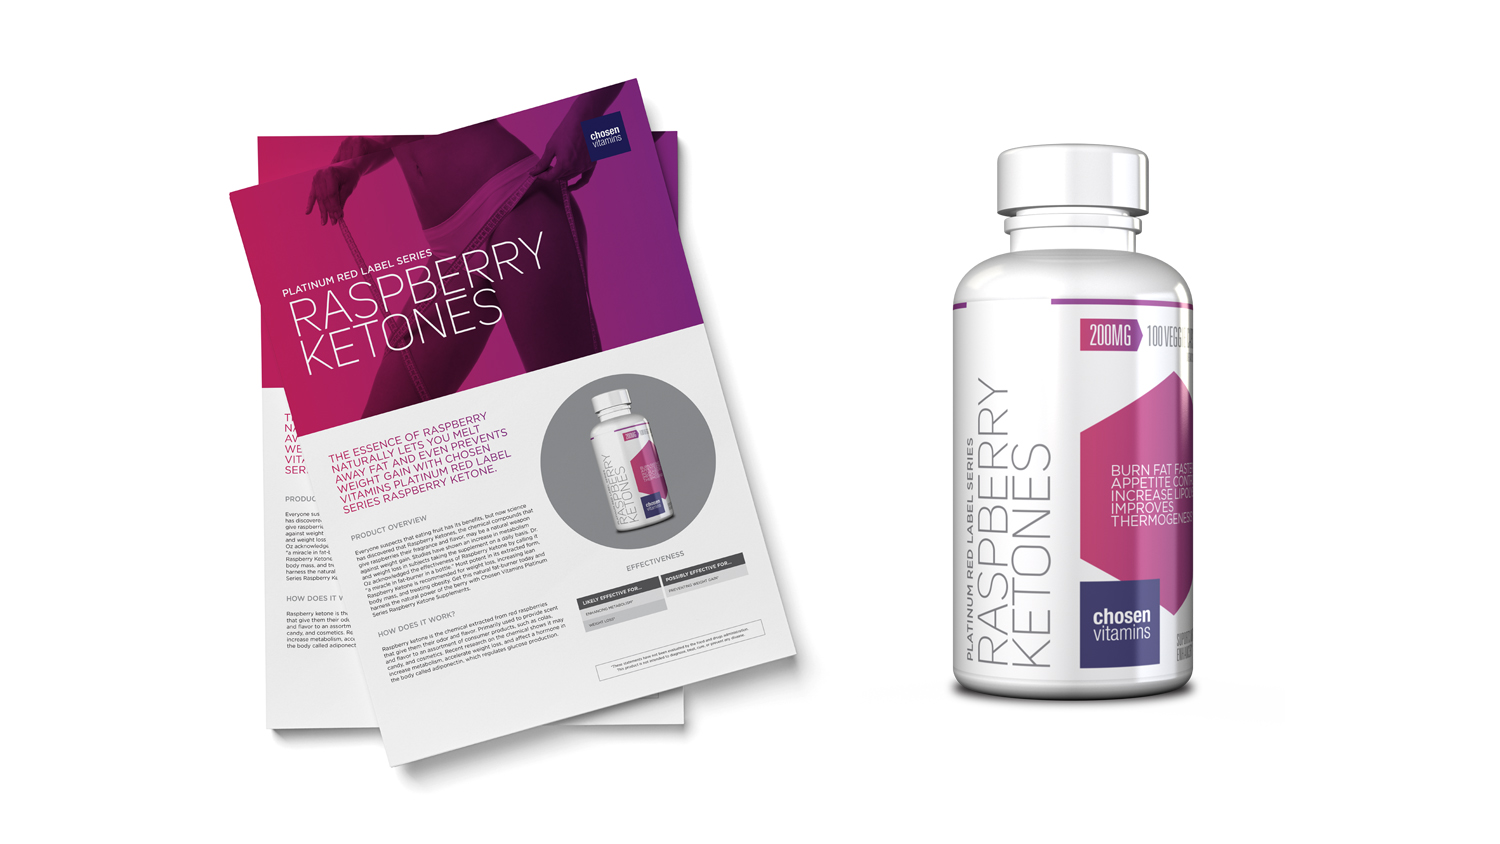 Chosen Vitamins Raspberry Ketones